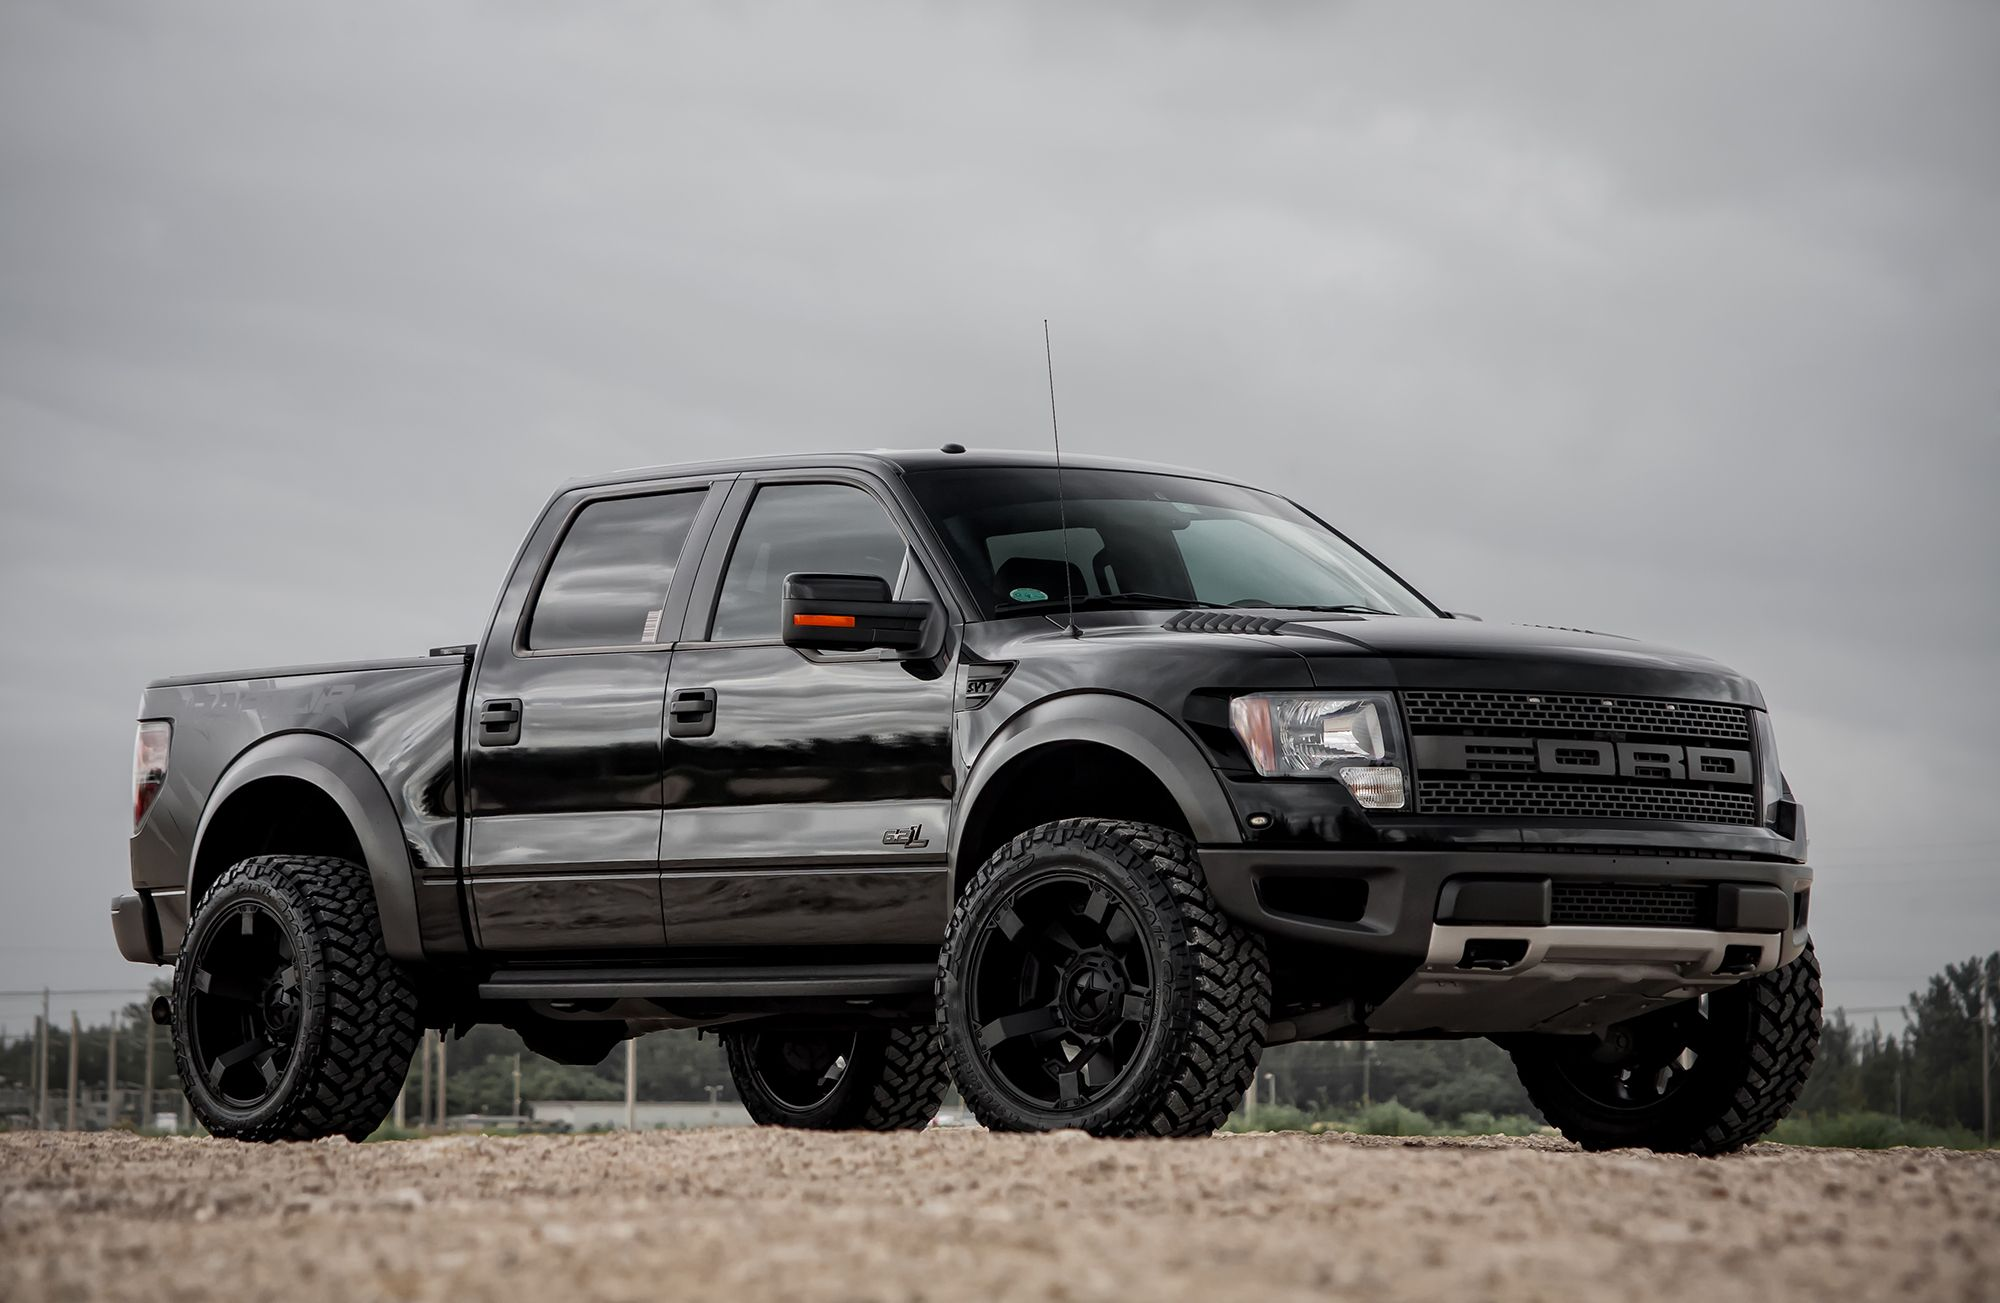 The 25 best ford f150 raptor 2015 ideas on pinterest ford raptor 2015 ford raptor for sale and 2013 ford raptor